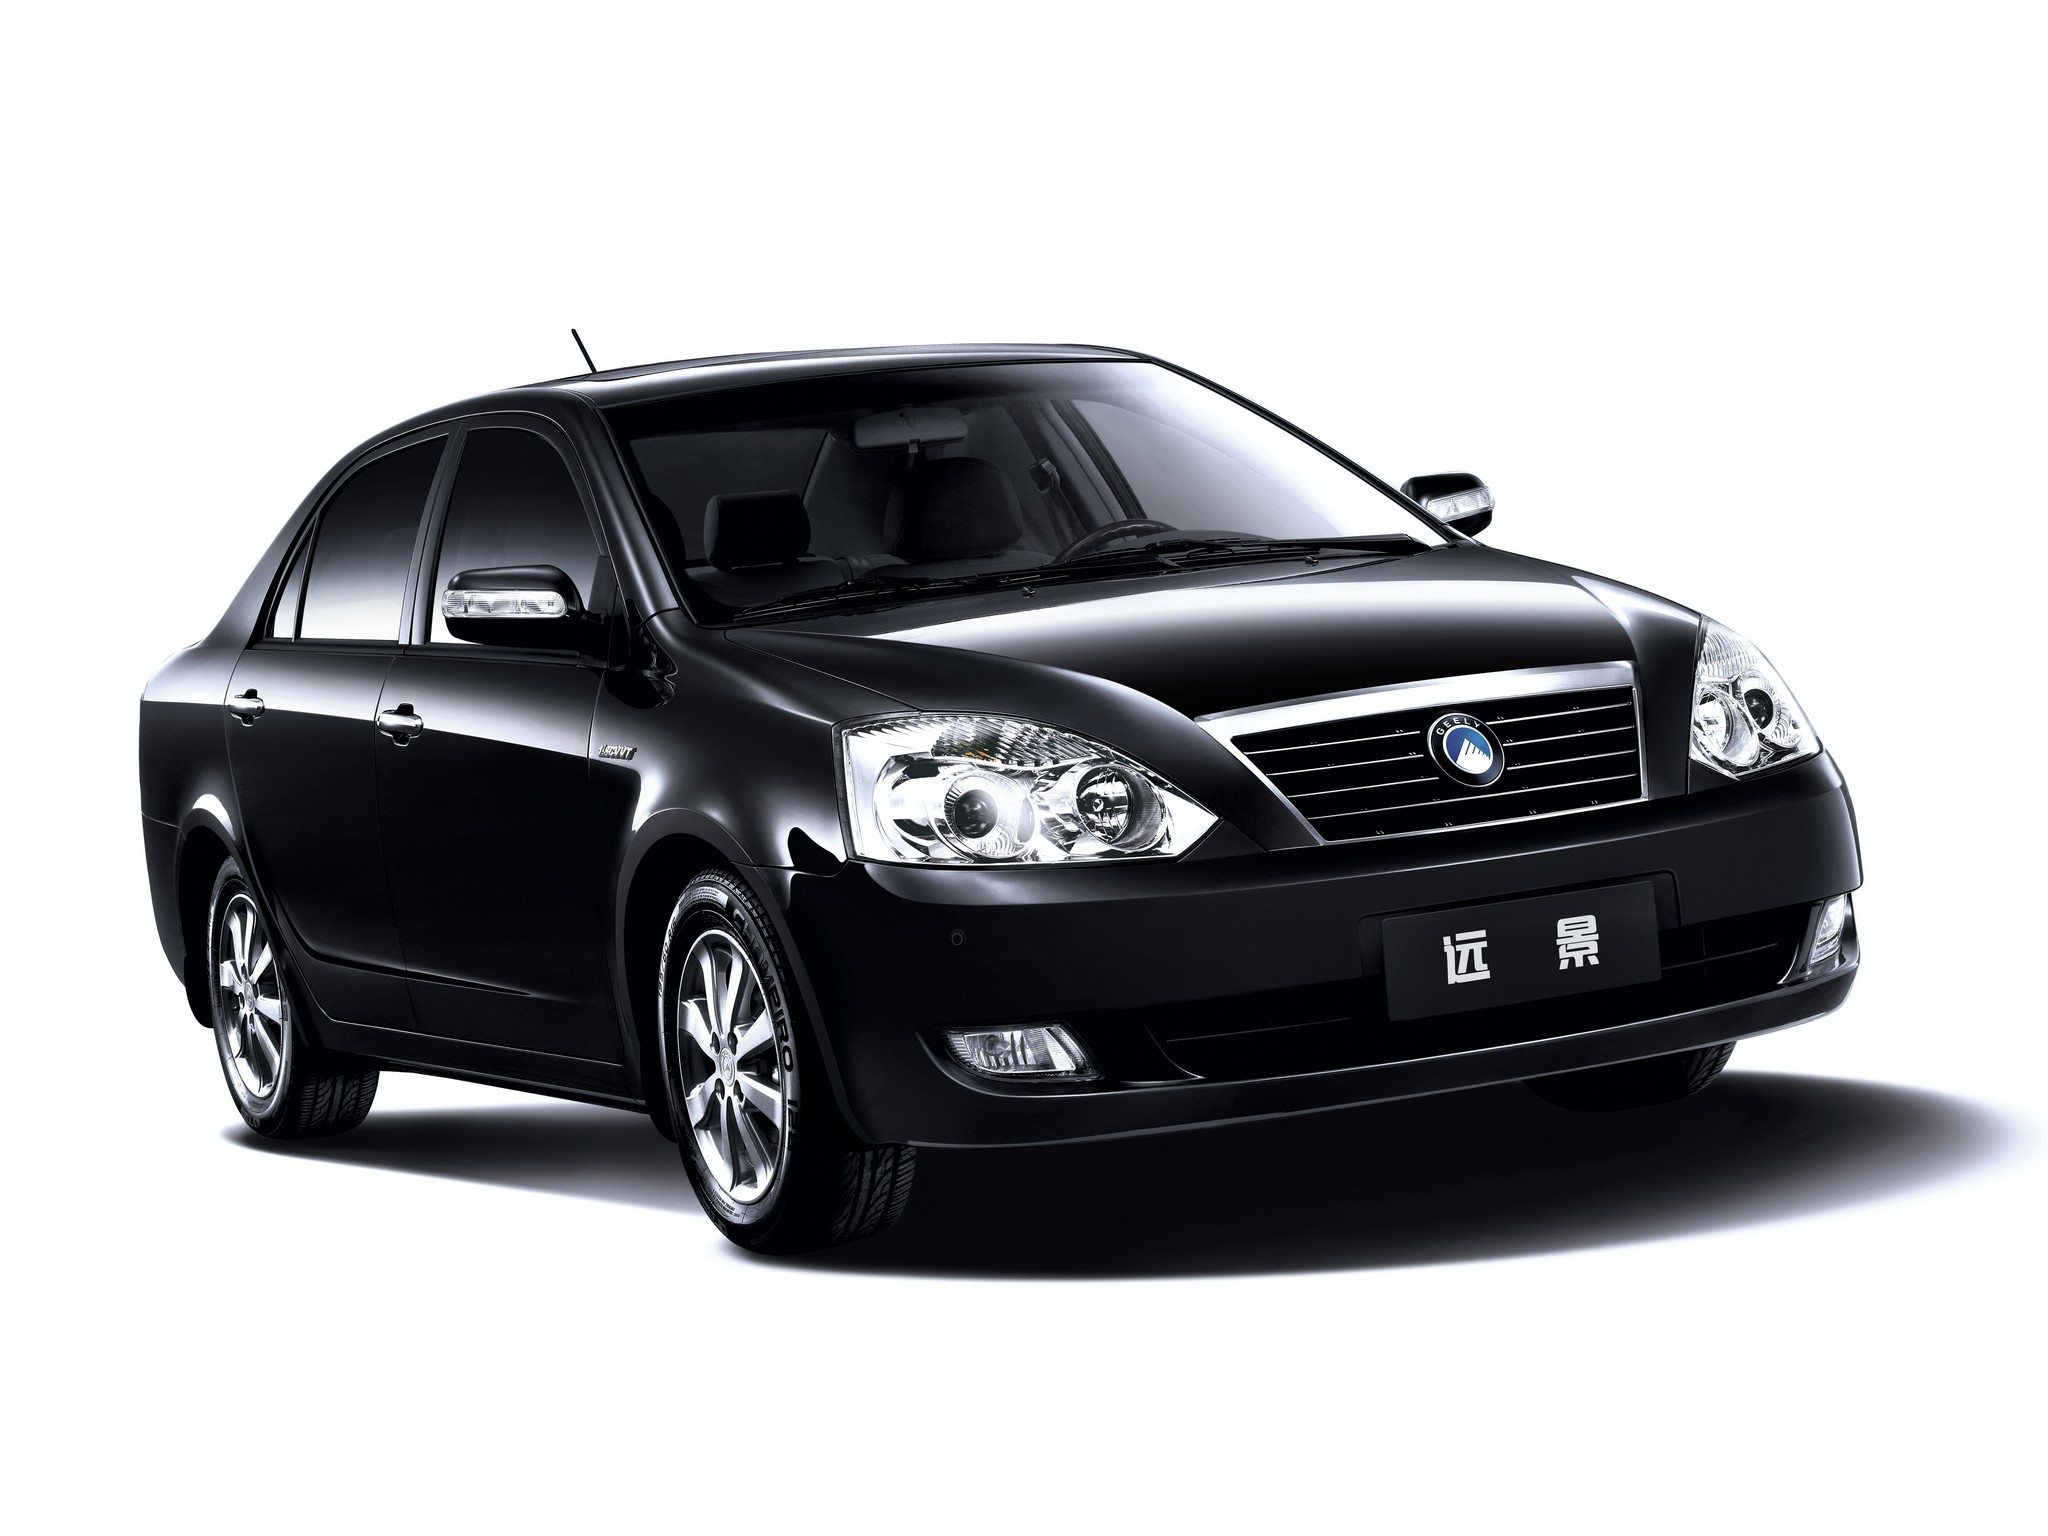 Geely vision photo - 7